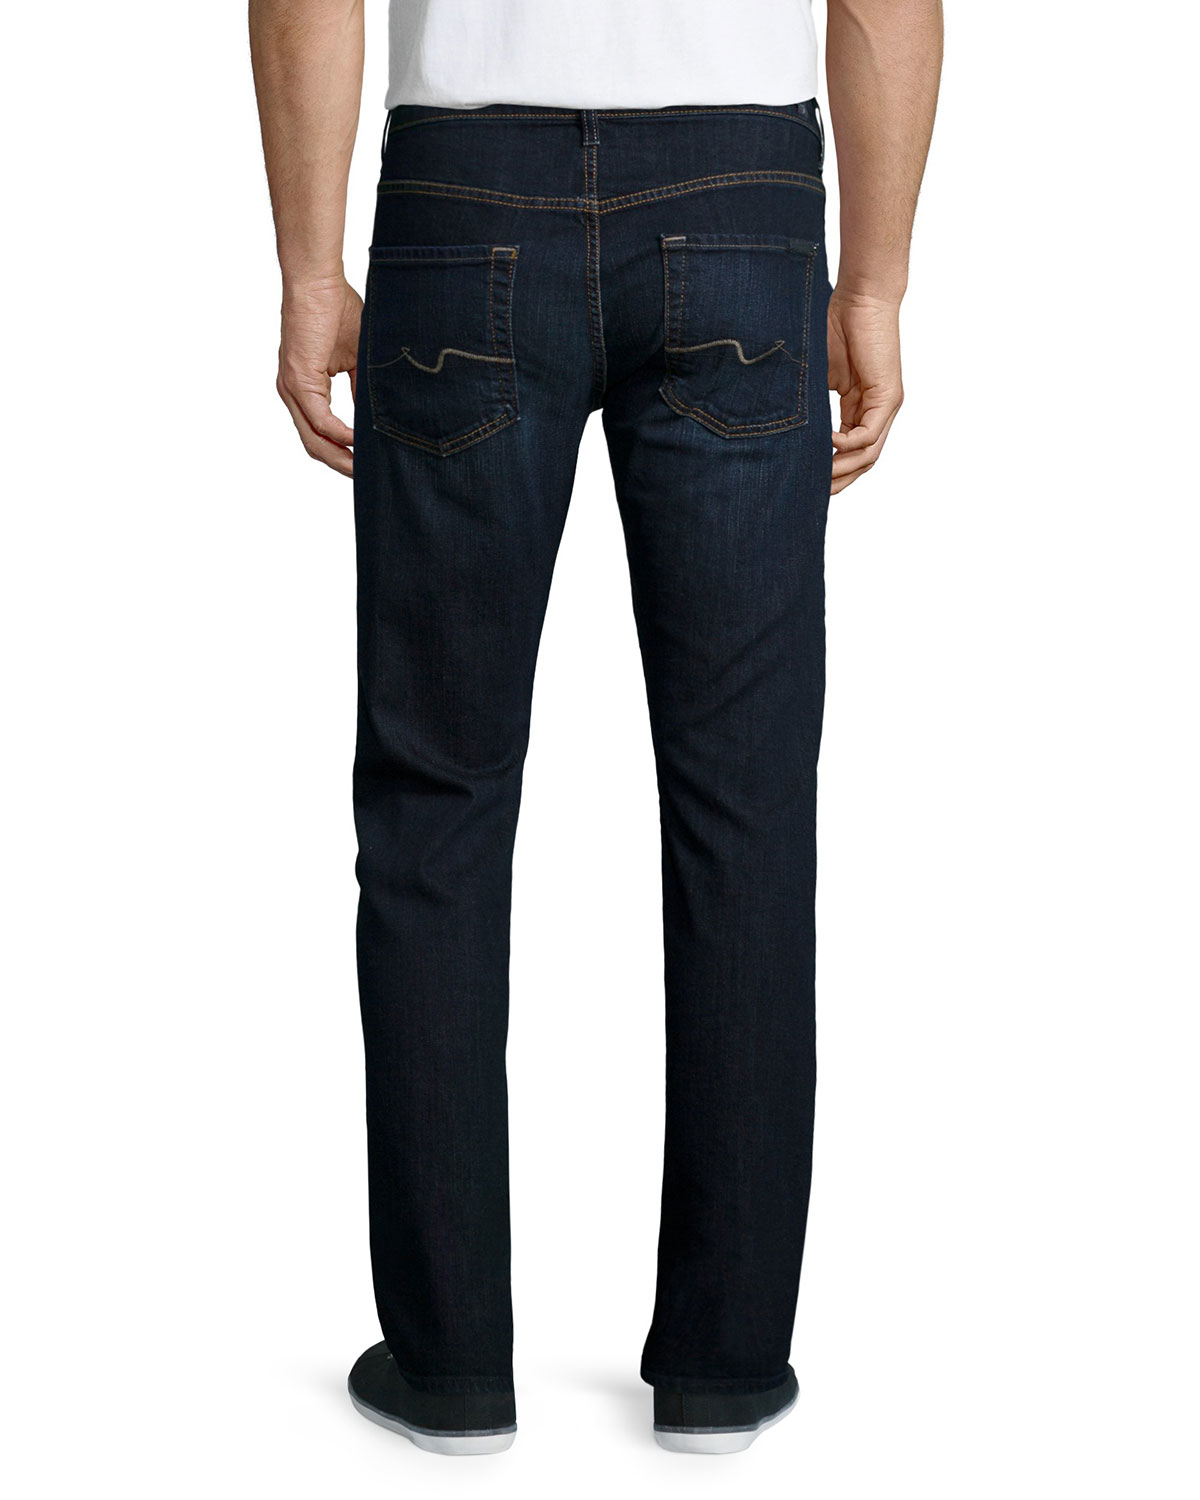 7 for all mankind luxe performance park straight leg jeans in blue for men indigo lyst. Black Bedroom Furniture Sets. Home Design Ideas